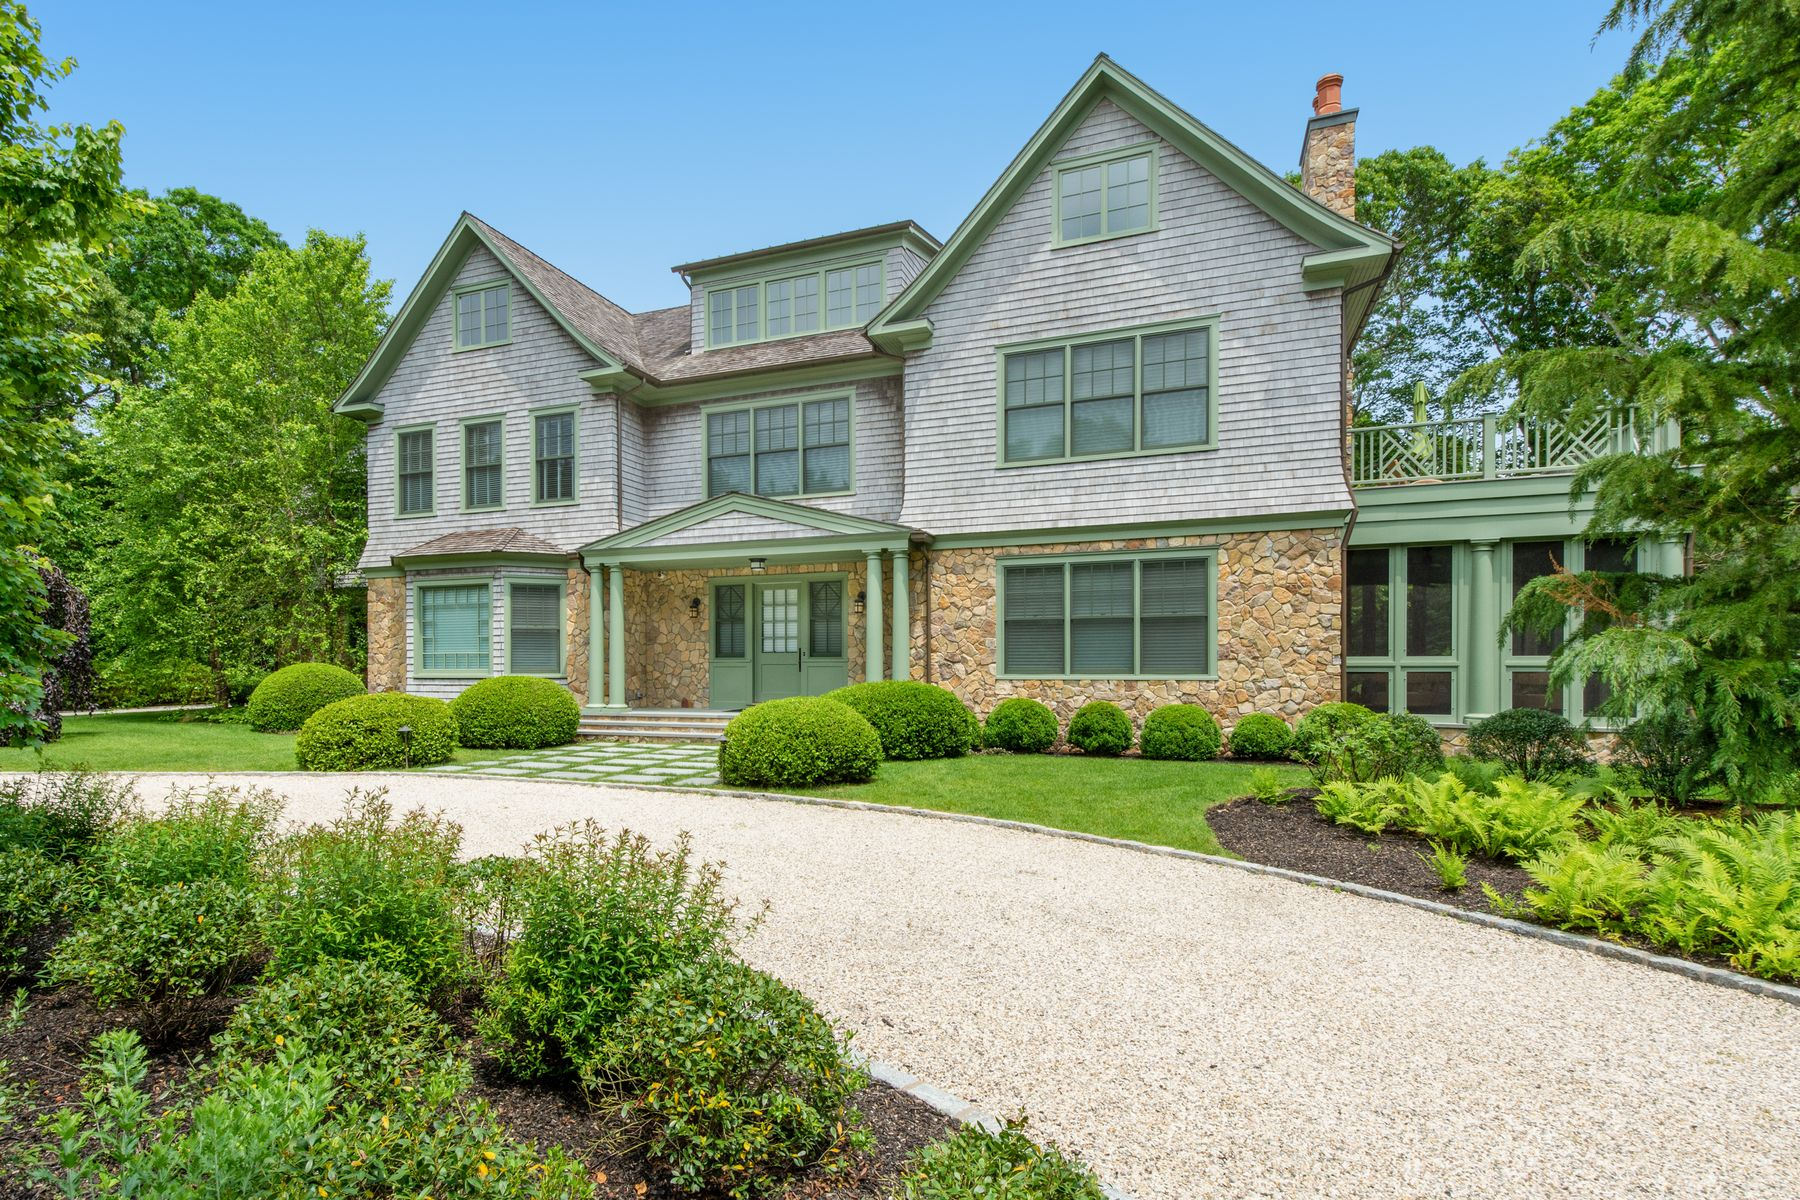 Single Family Homes for Sale at NEW GORGEOUS ESTATE W/ BEACH ACCESS 49 Robertson Drive Sag Harbor, New York 11963 United States